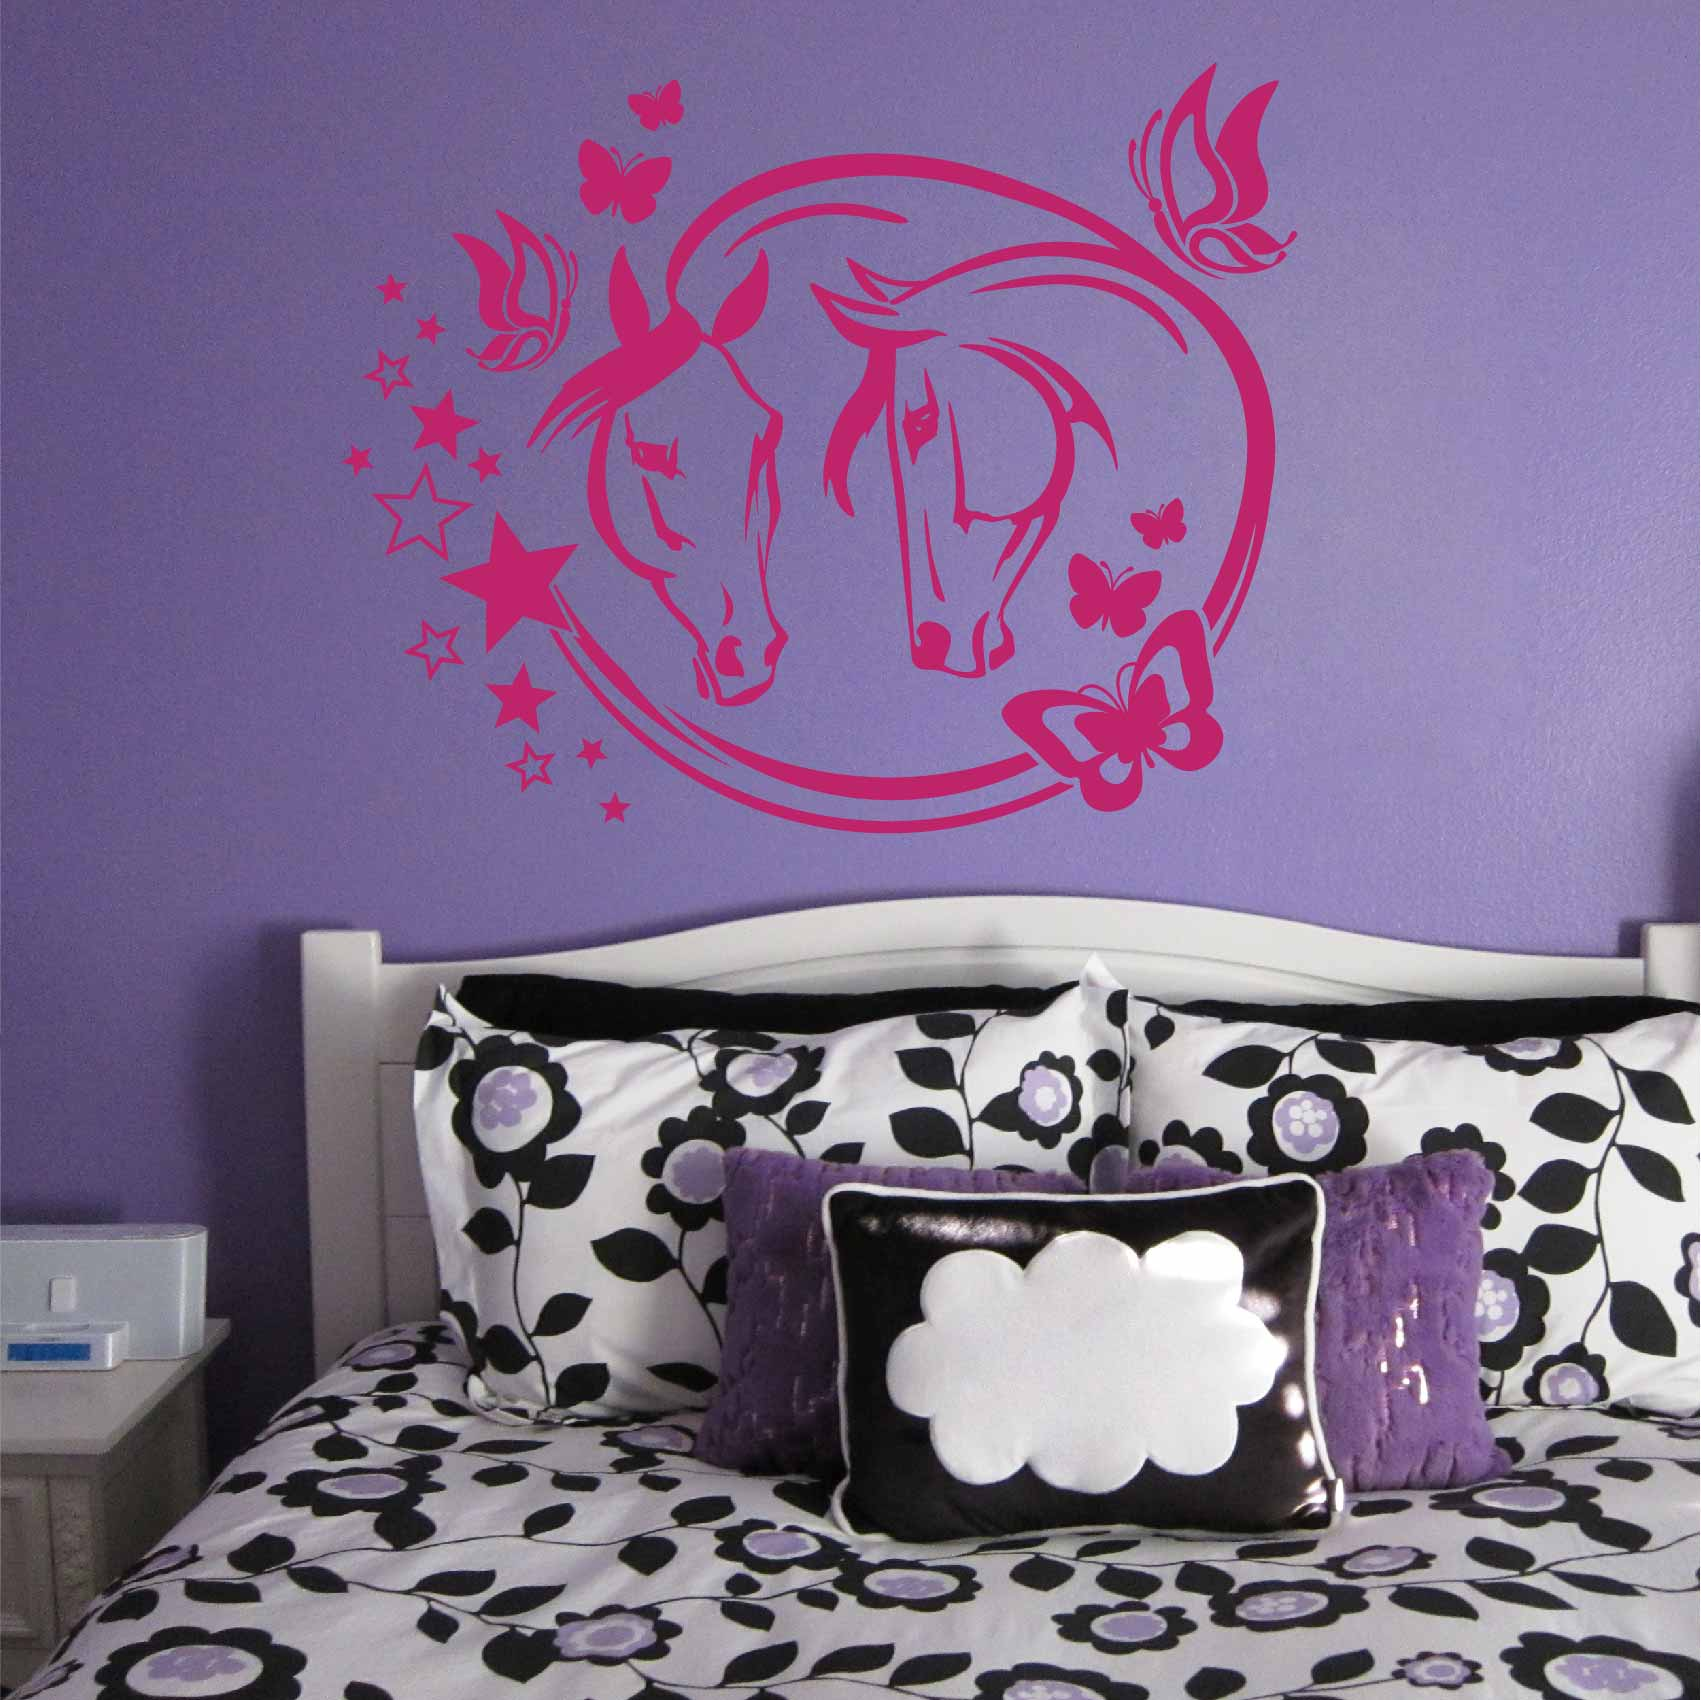 Stickers Papillon Chambre Fille Stickers Chevaux Pour Chambre Fille Interesting Perfect Stickers